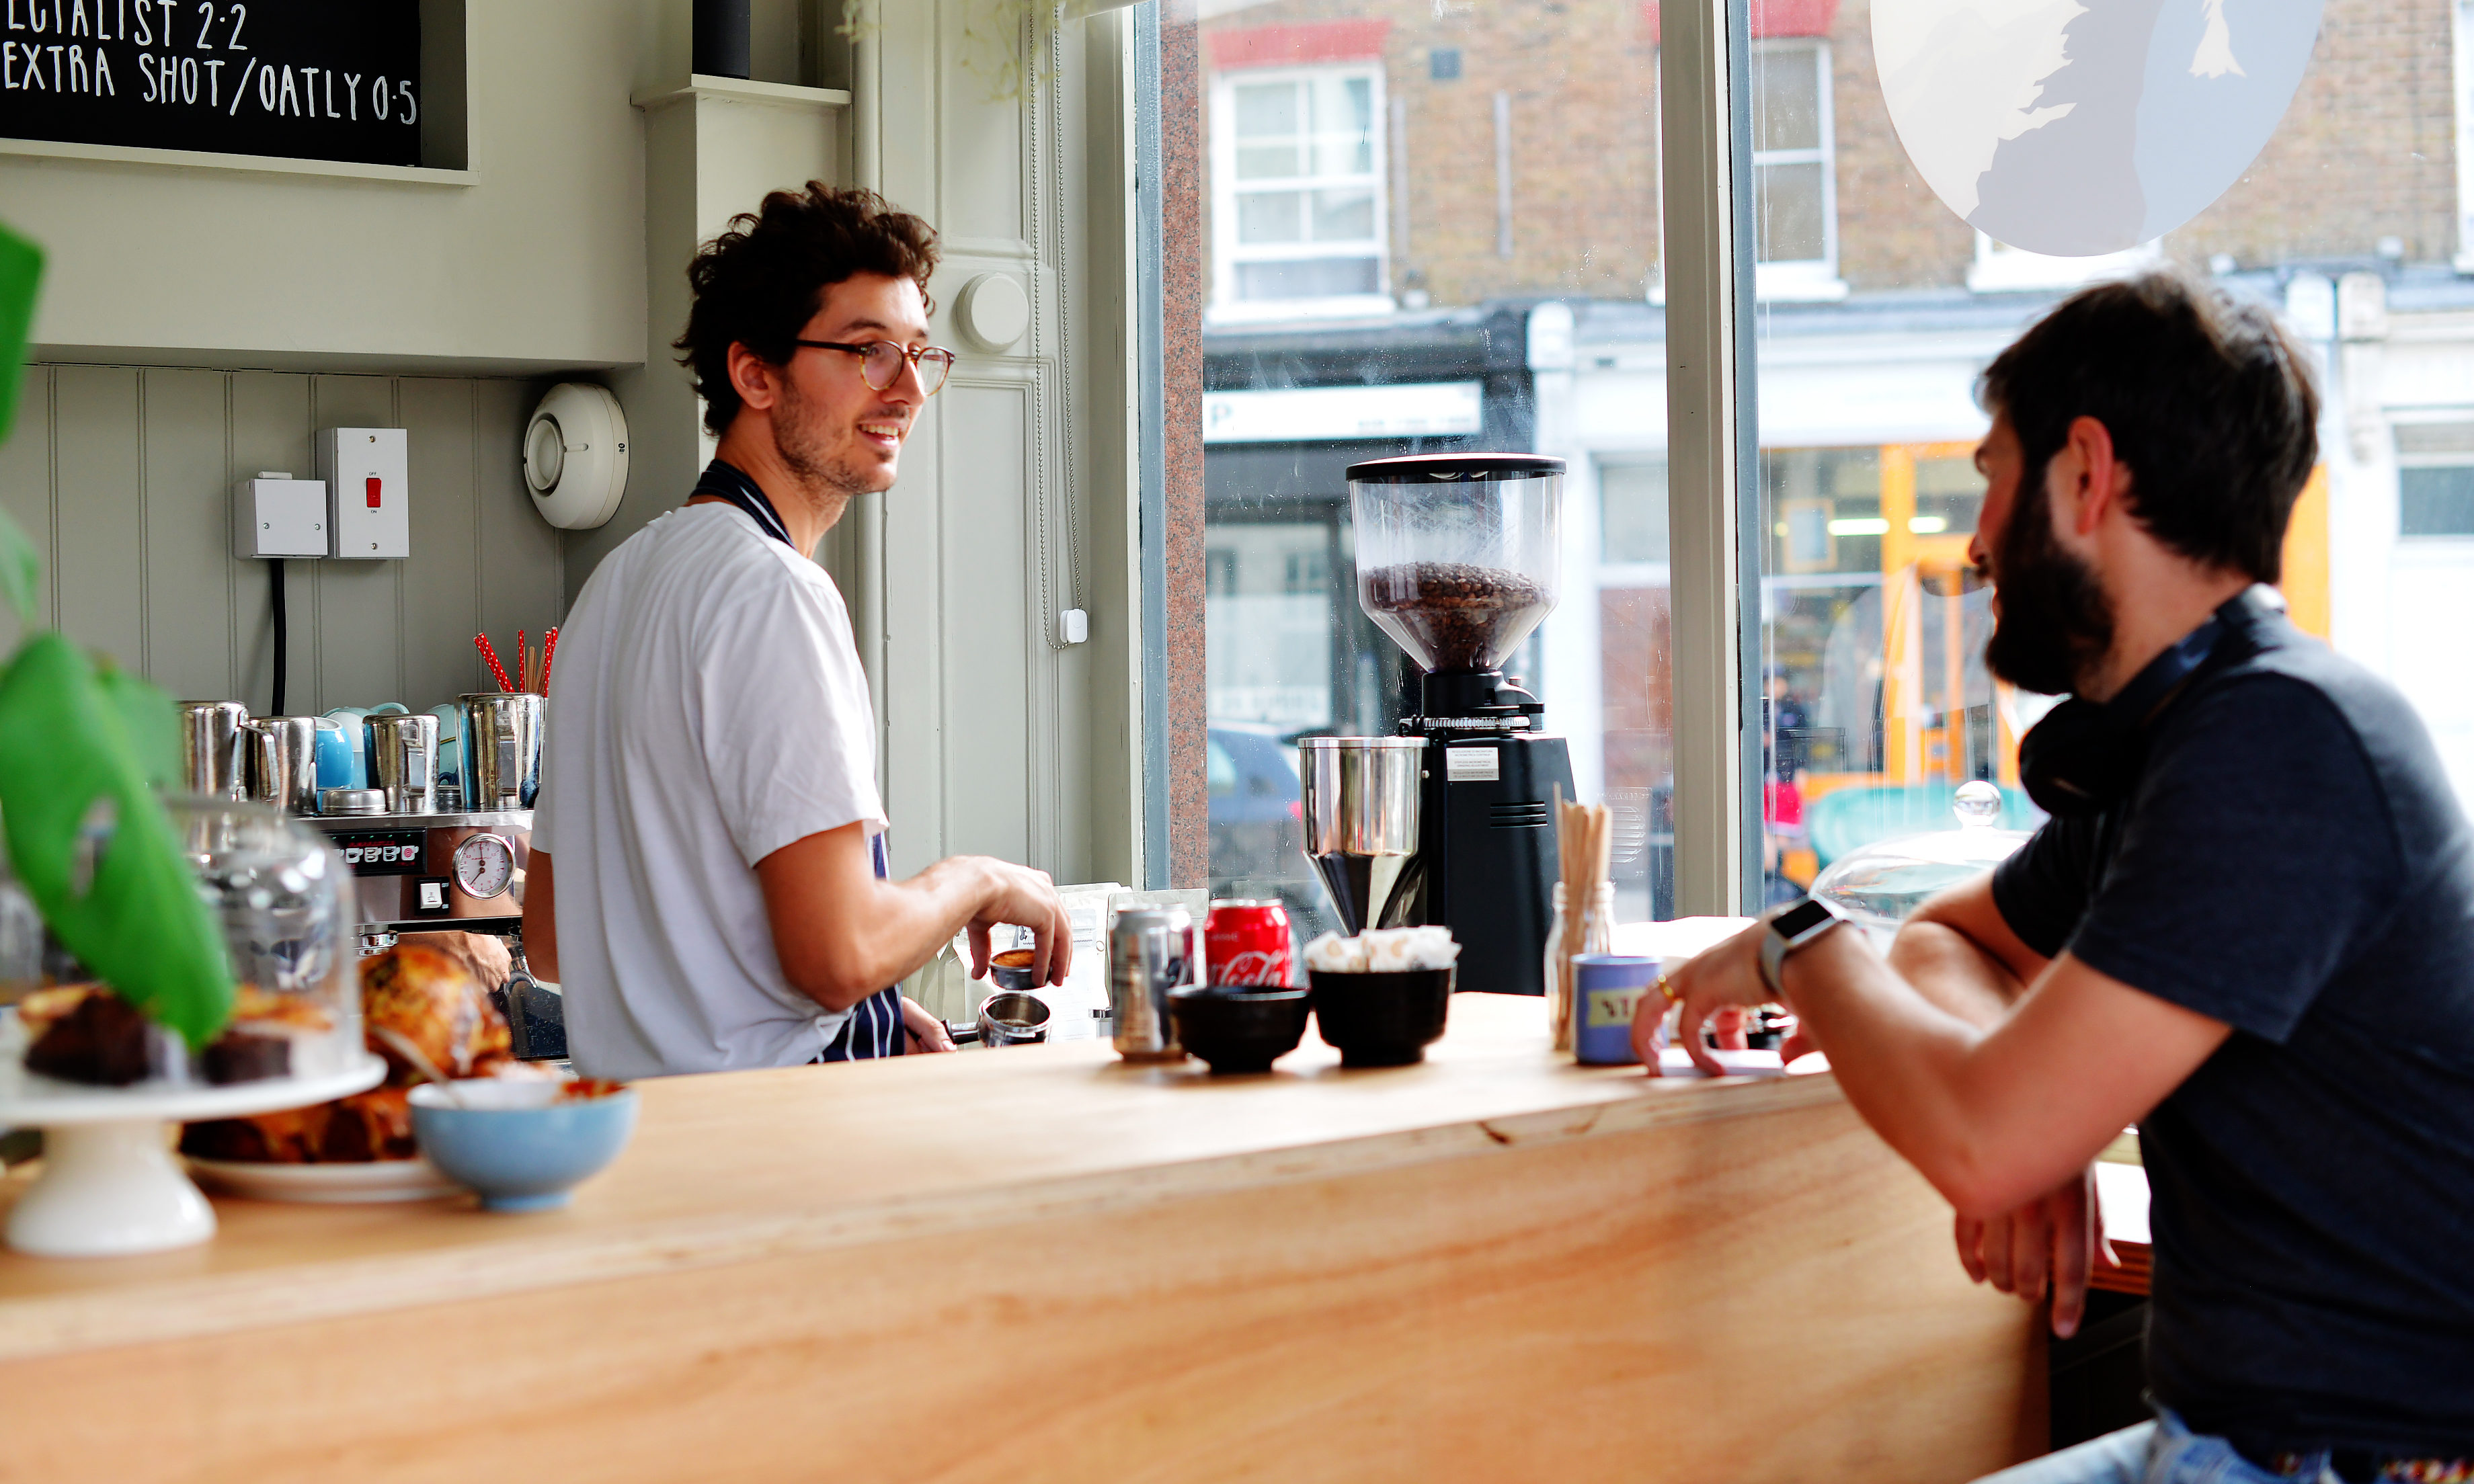 Brodie Williams has opened a cafe in London